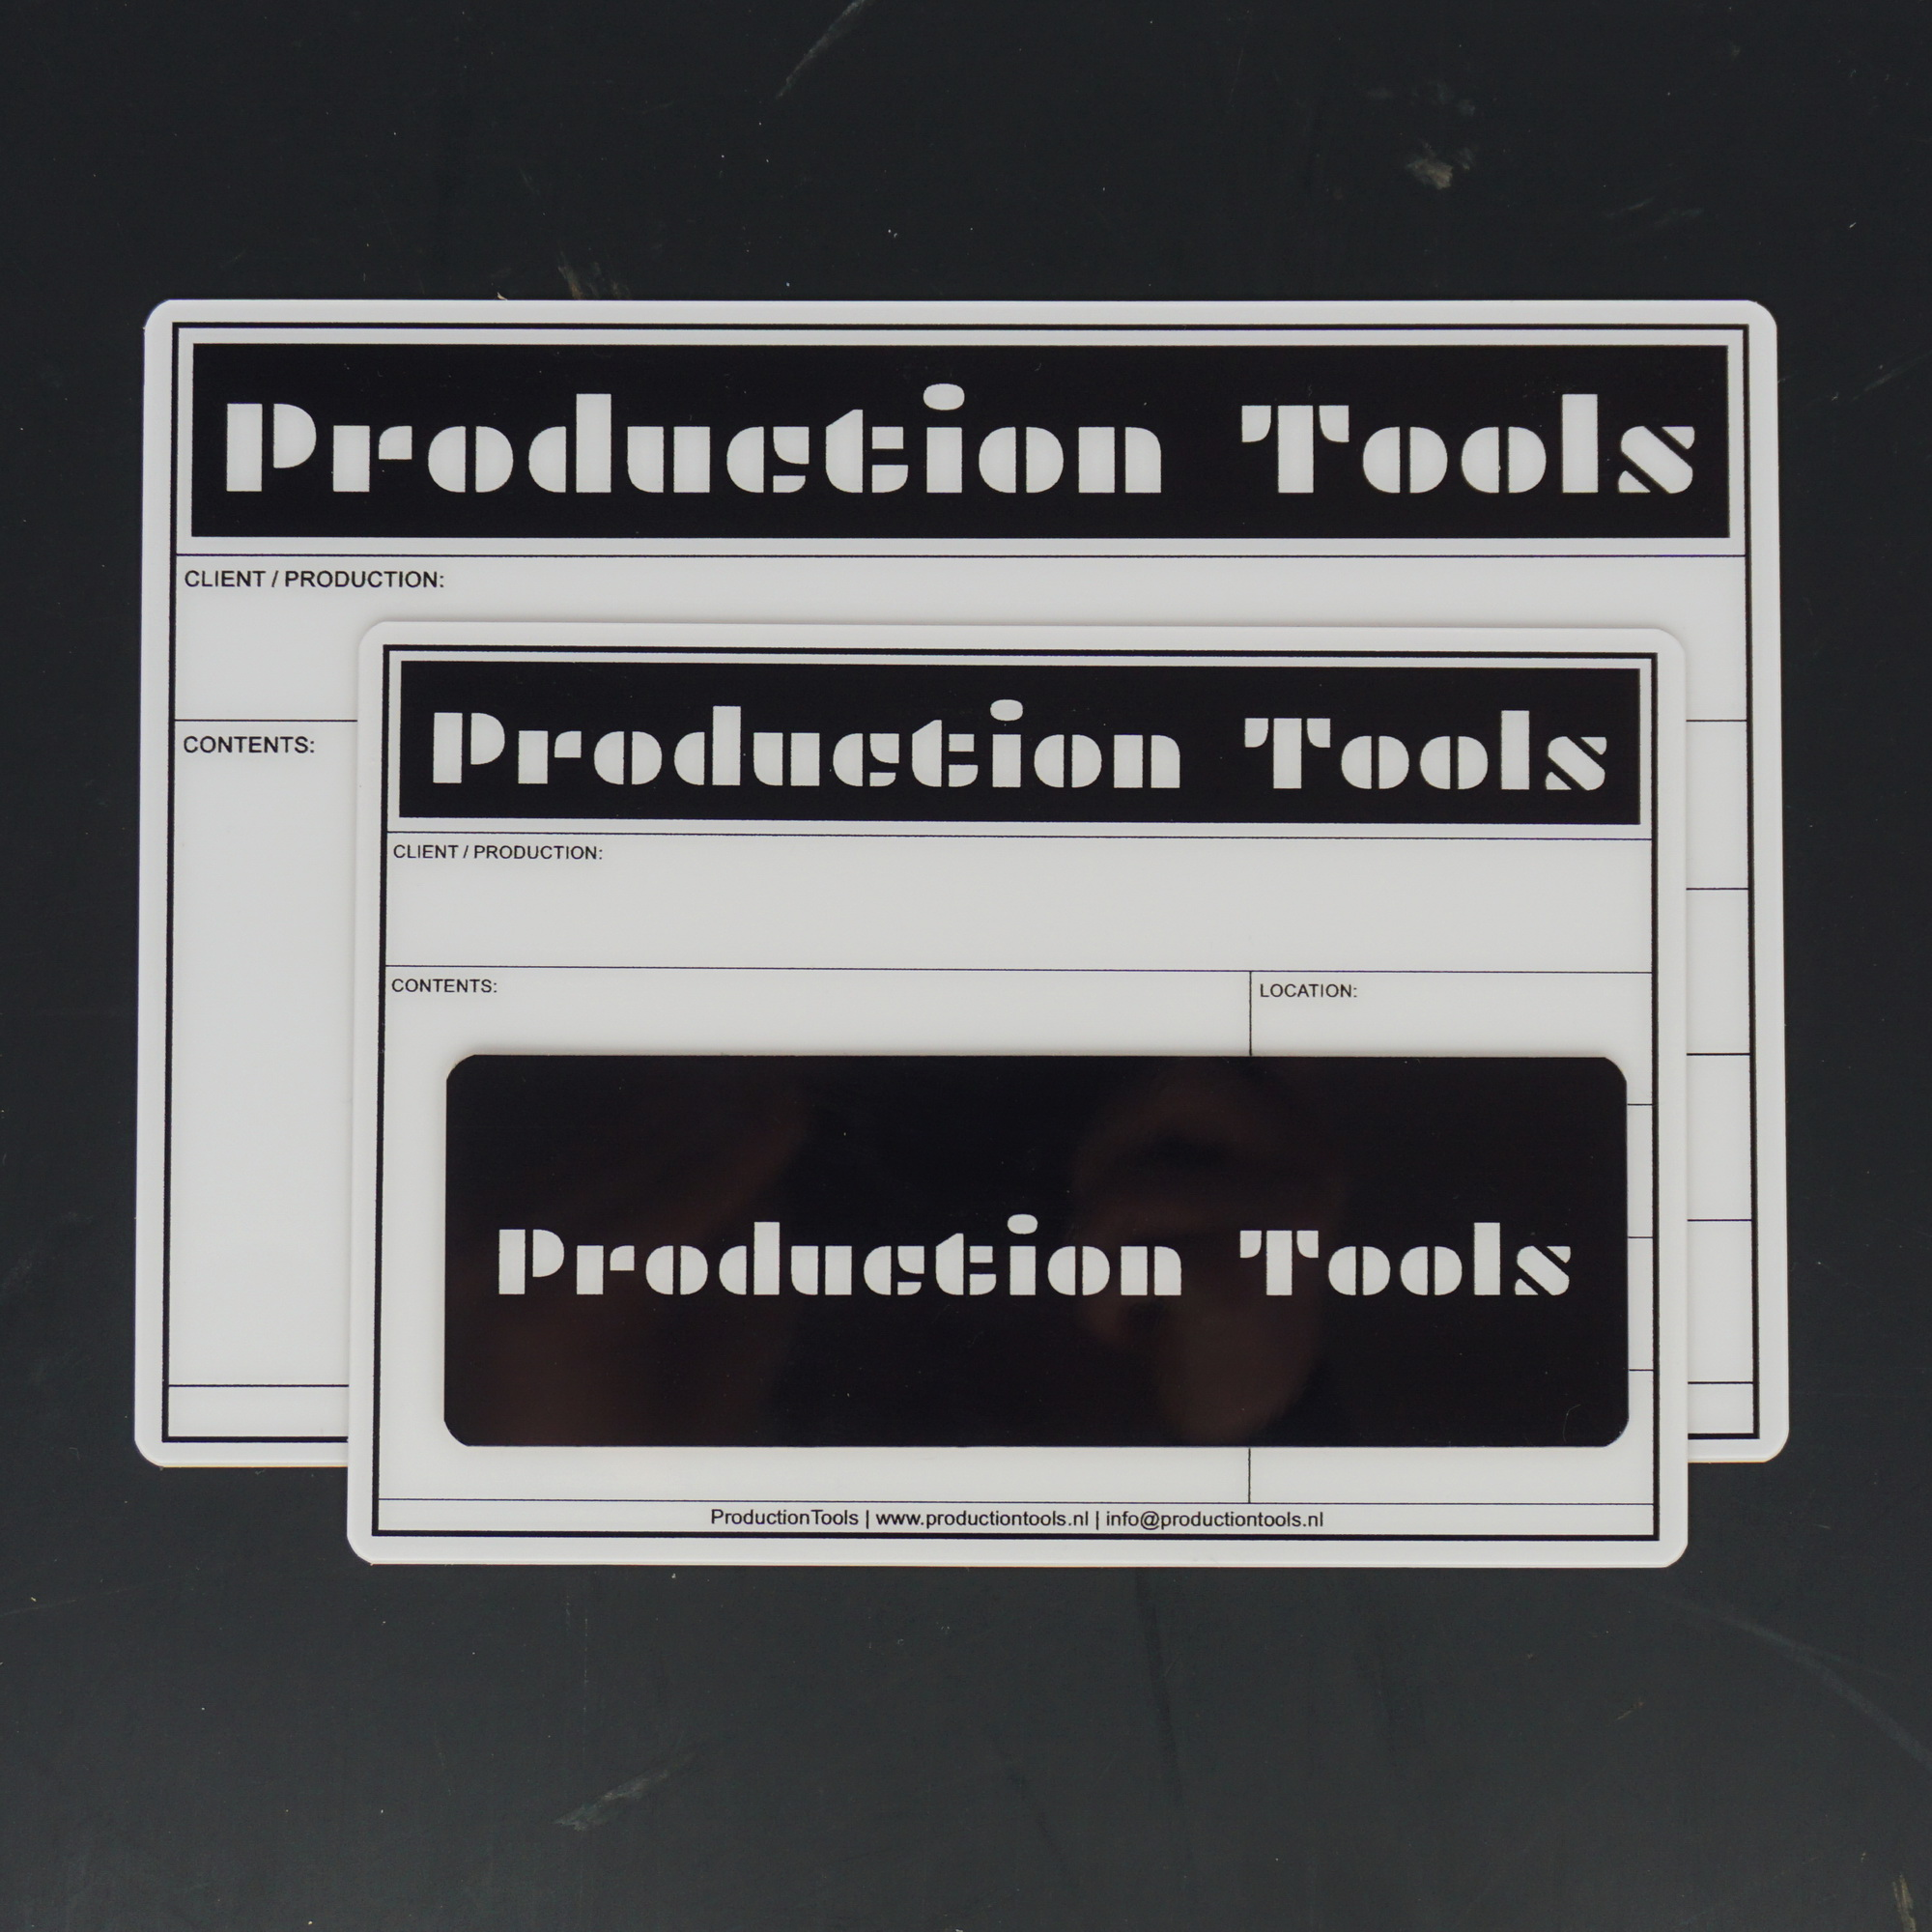 Flightcaselabels Caselabels productiontools